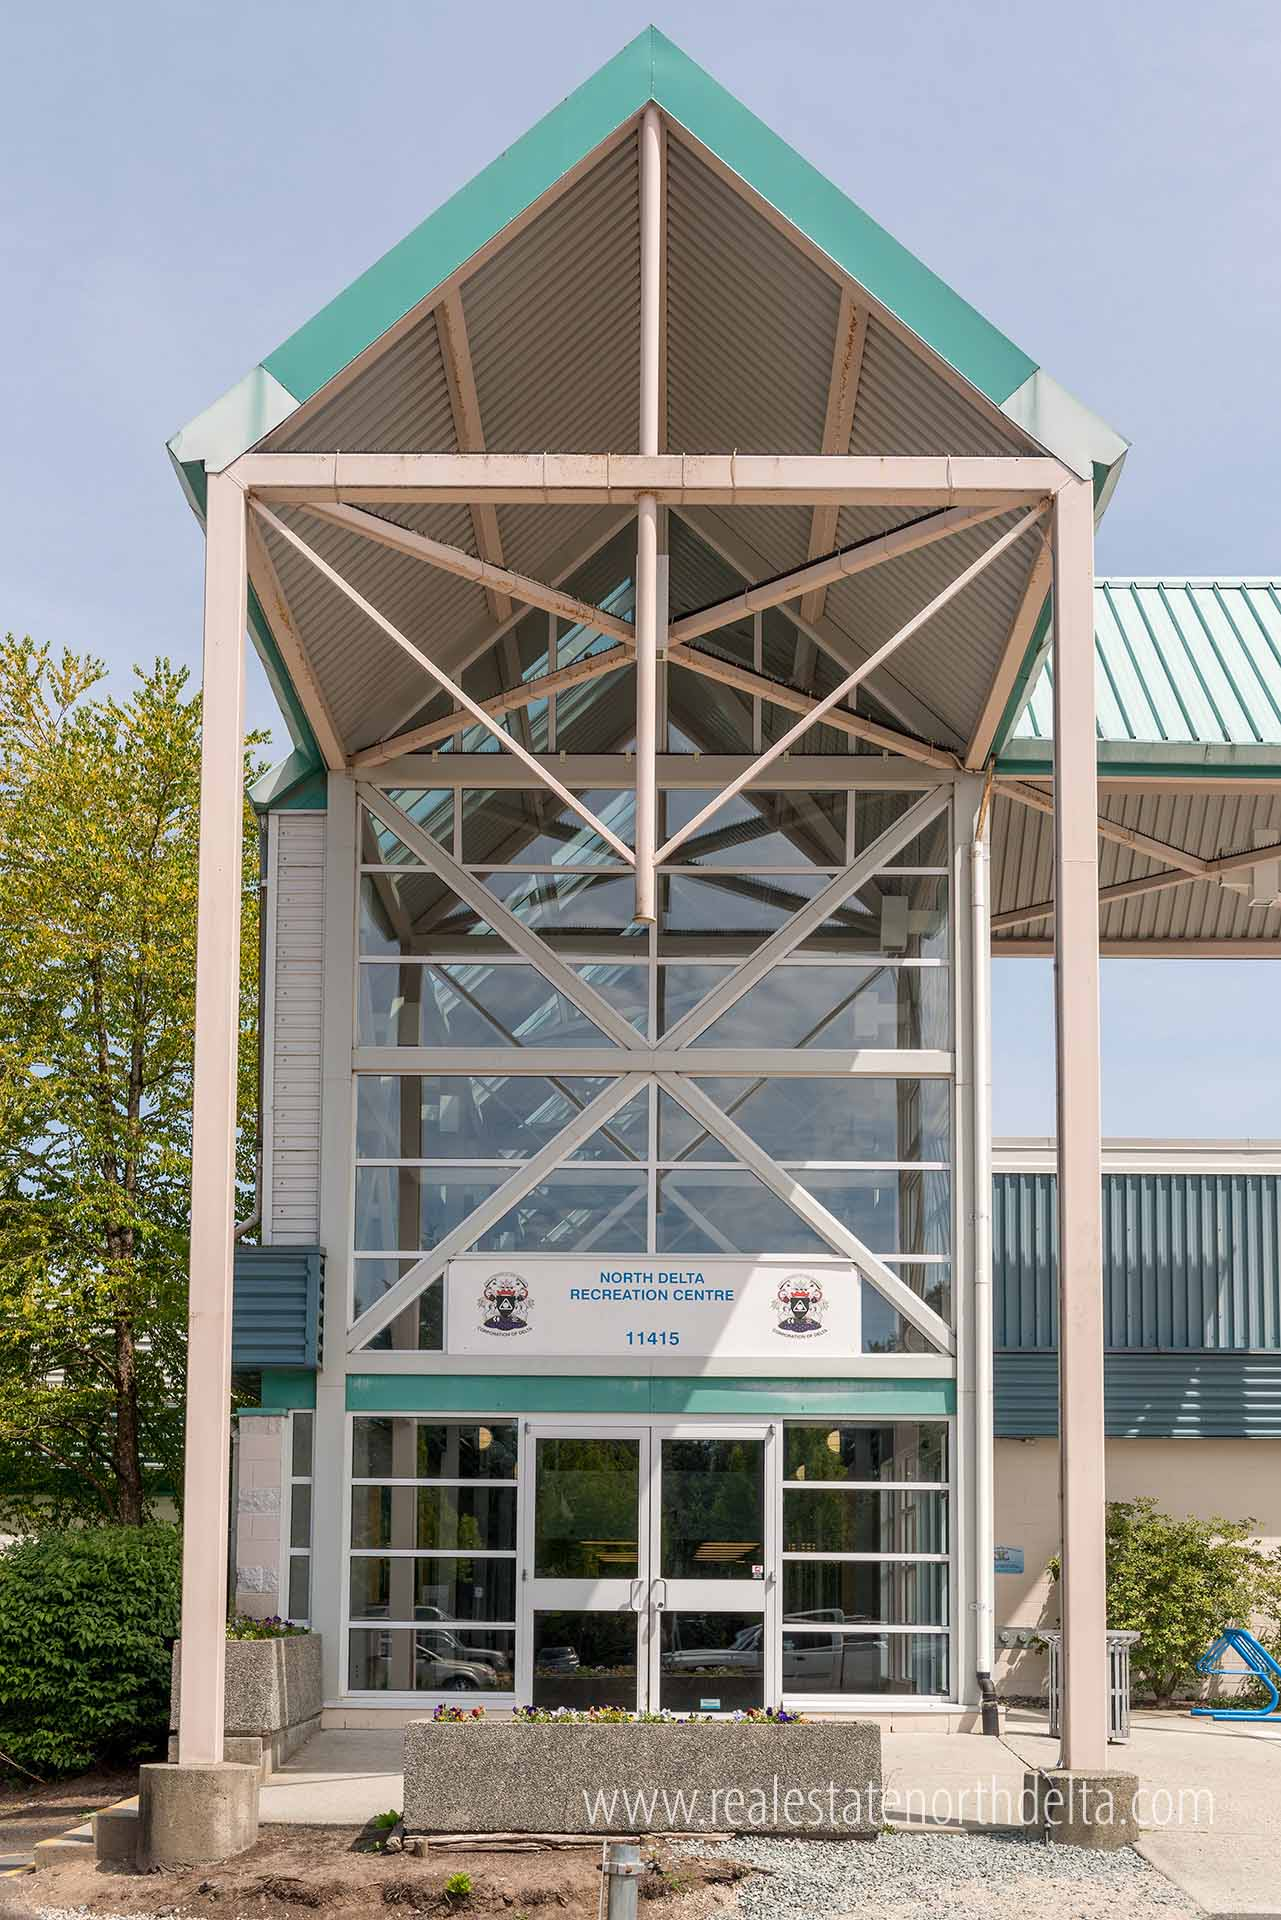 North Delta Rec Centre